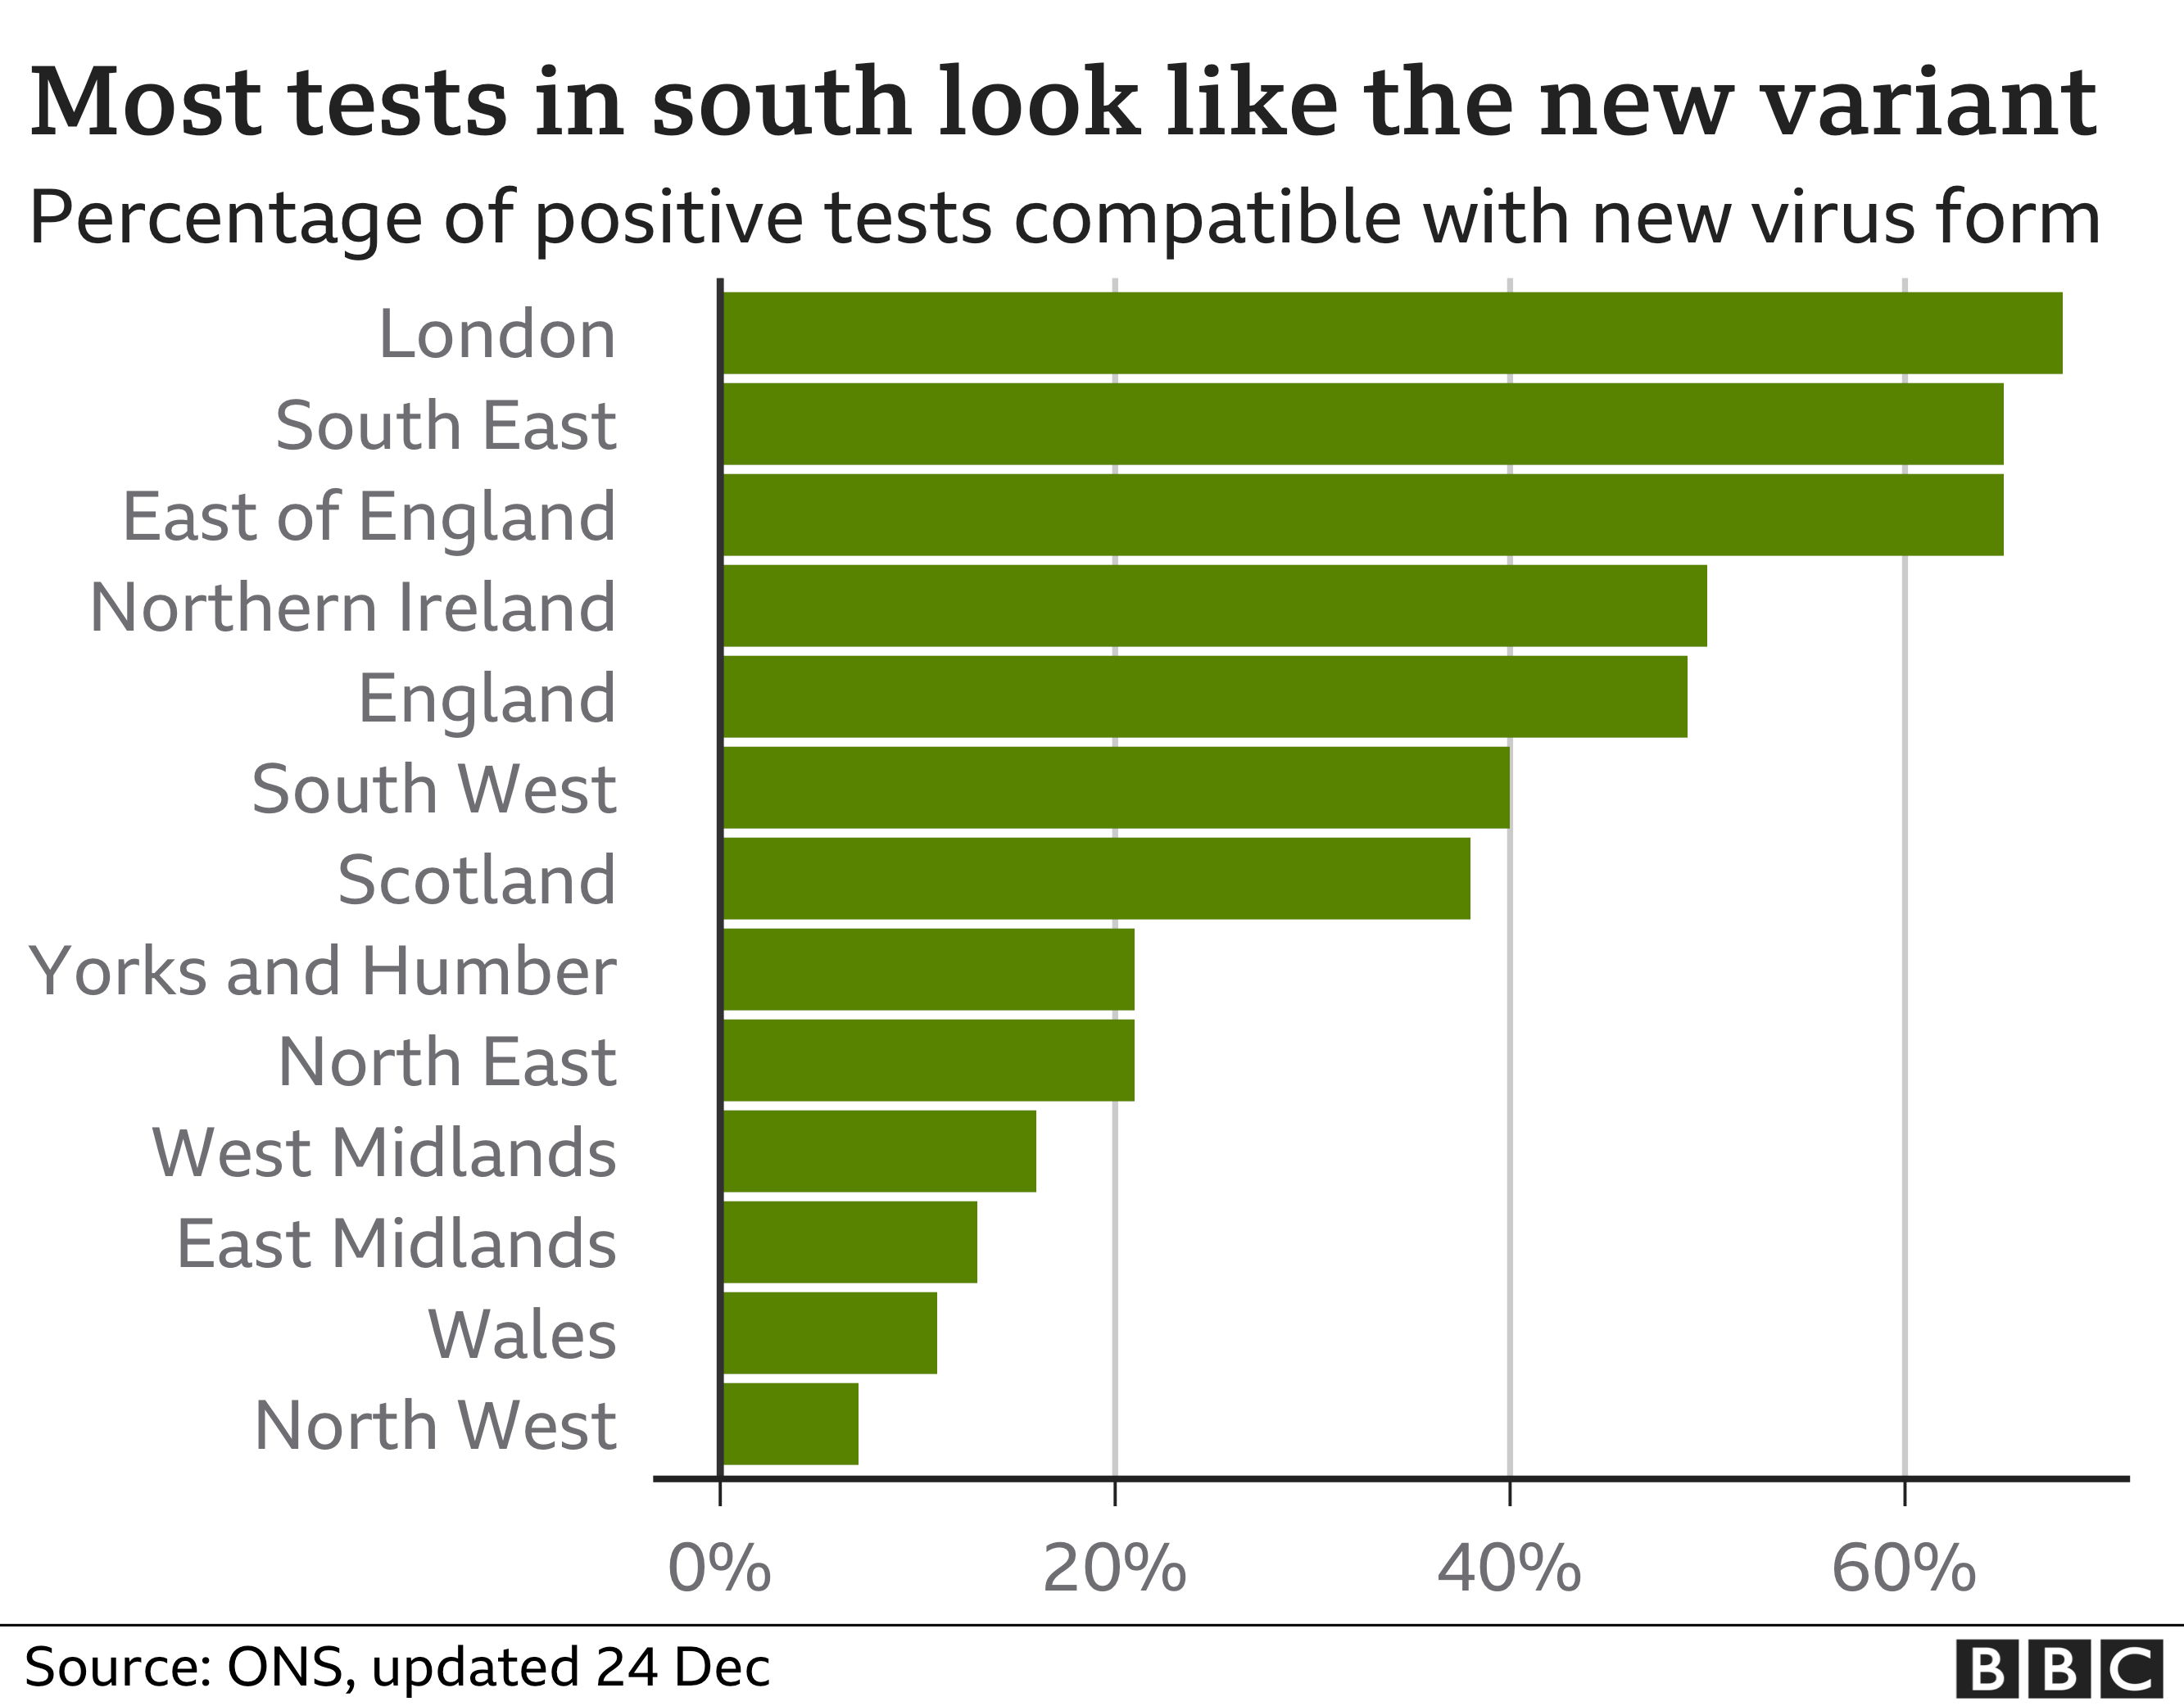 Most positive tests in south of England looks like the new variant